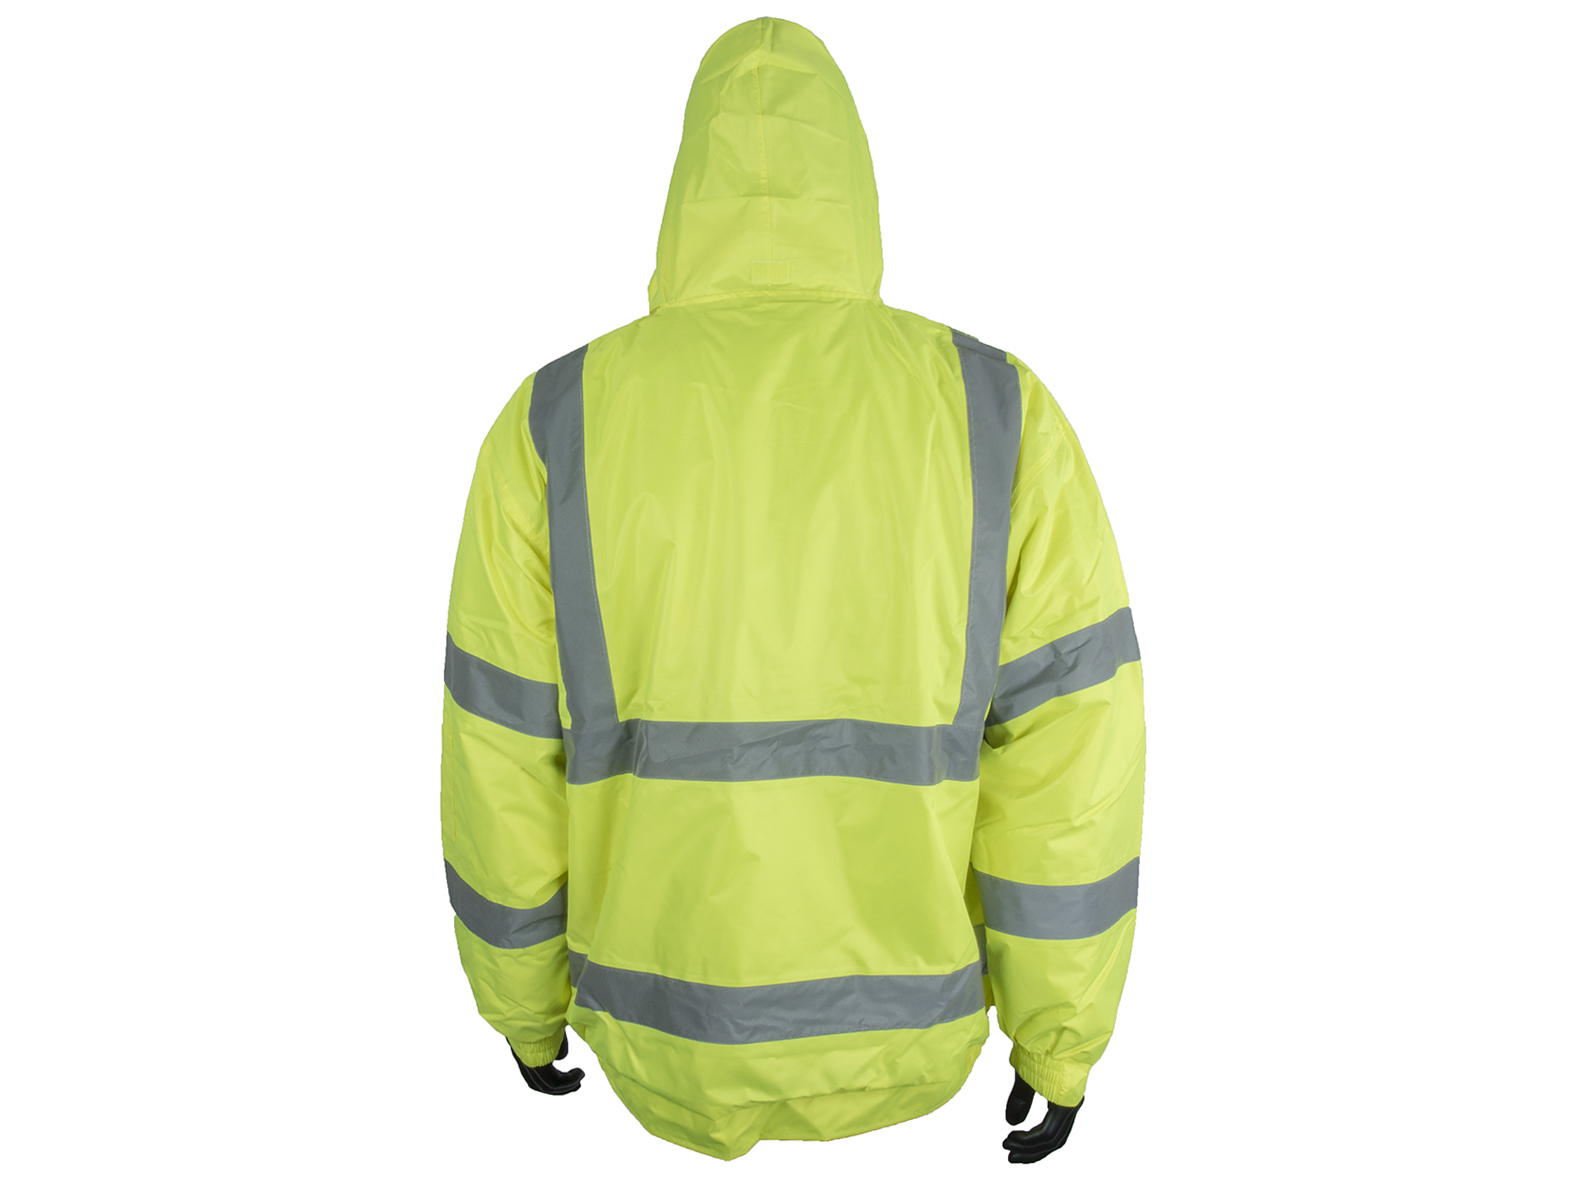 High Visibility Waterproof Bomber Jacket w/ Heavy Duty Zip & Storm Flap - 4